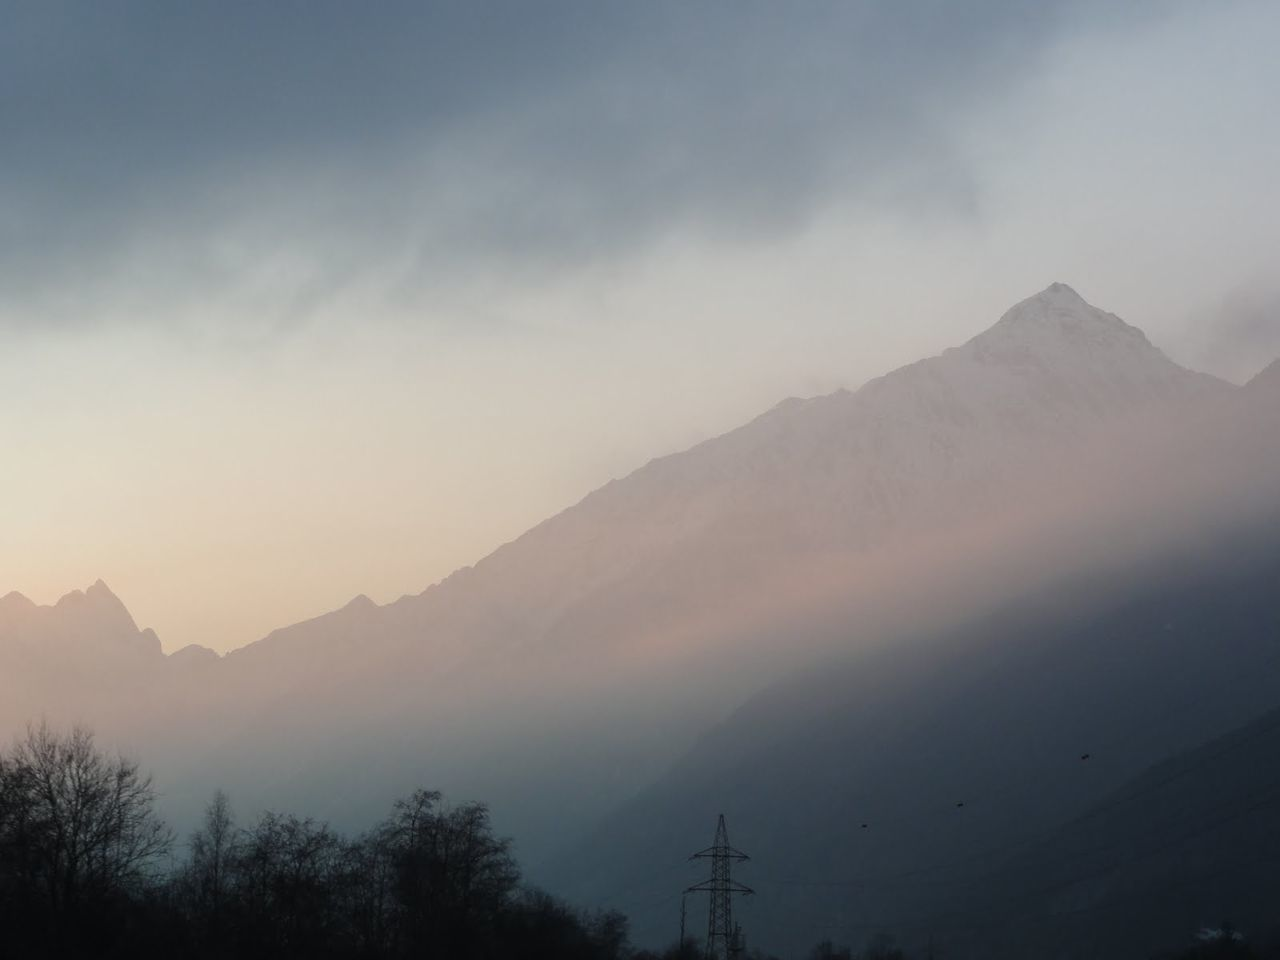 mountain, tranquility, nature, beauty in nature, tranquil scene, scenics, idyllic, fog, tree, mist, mountain range, outdoors, no people, sky, hazy, landscape, silhouette, day